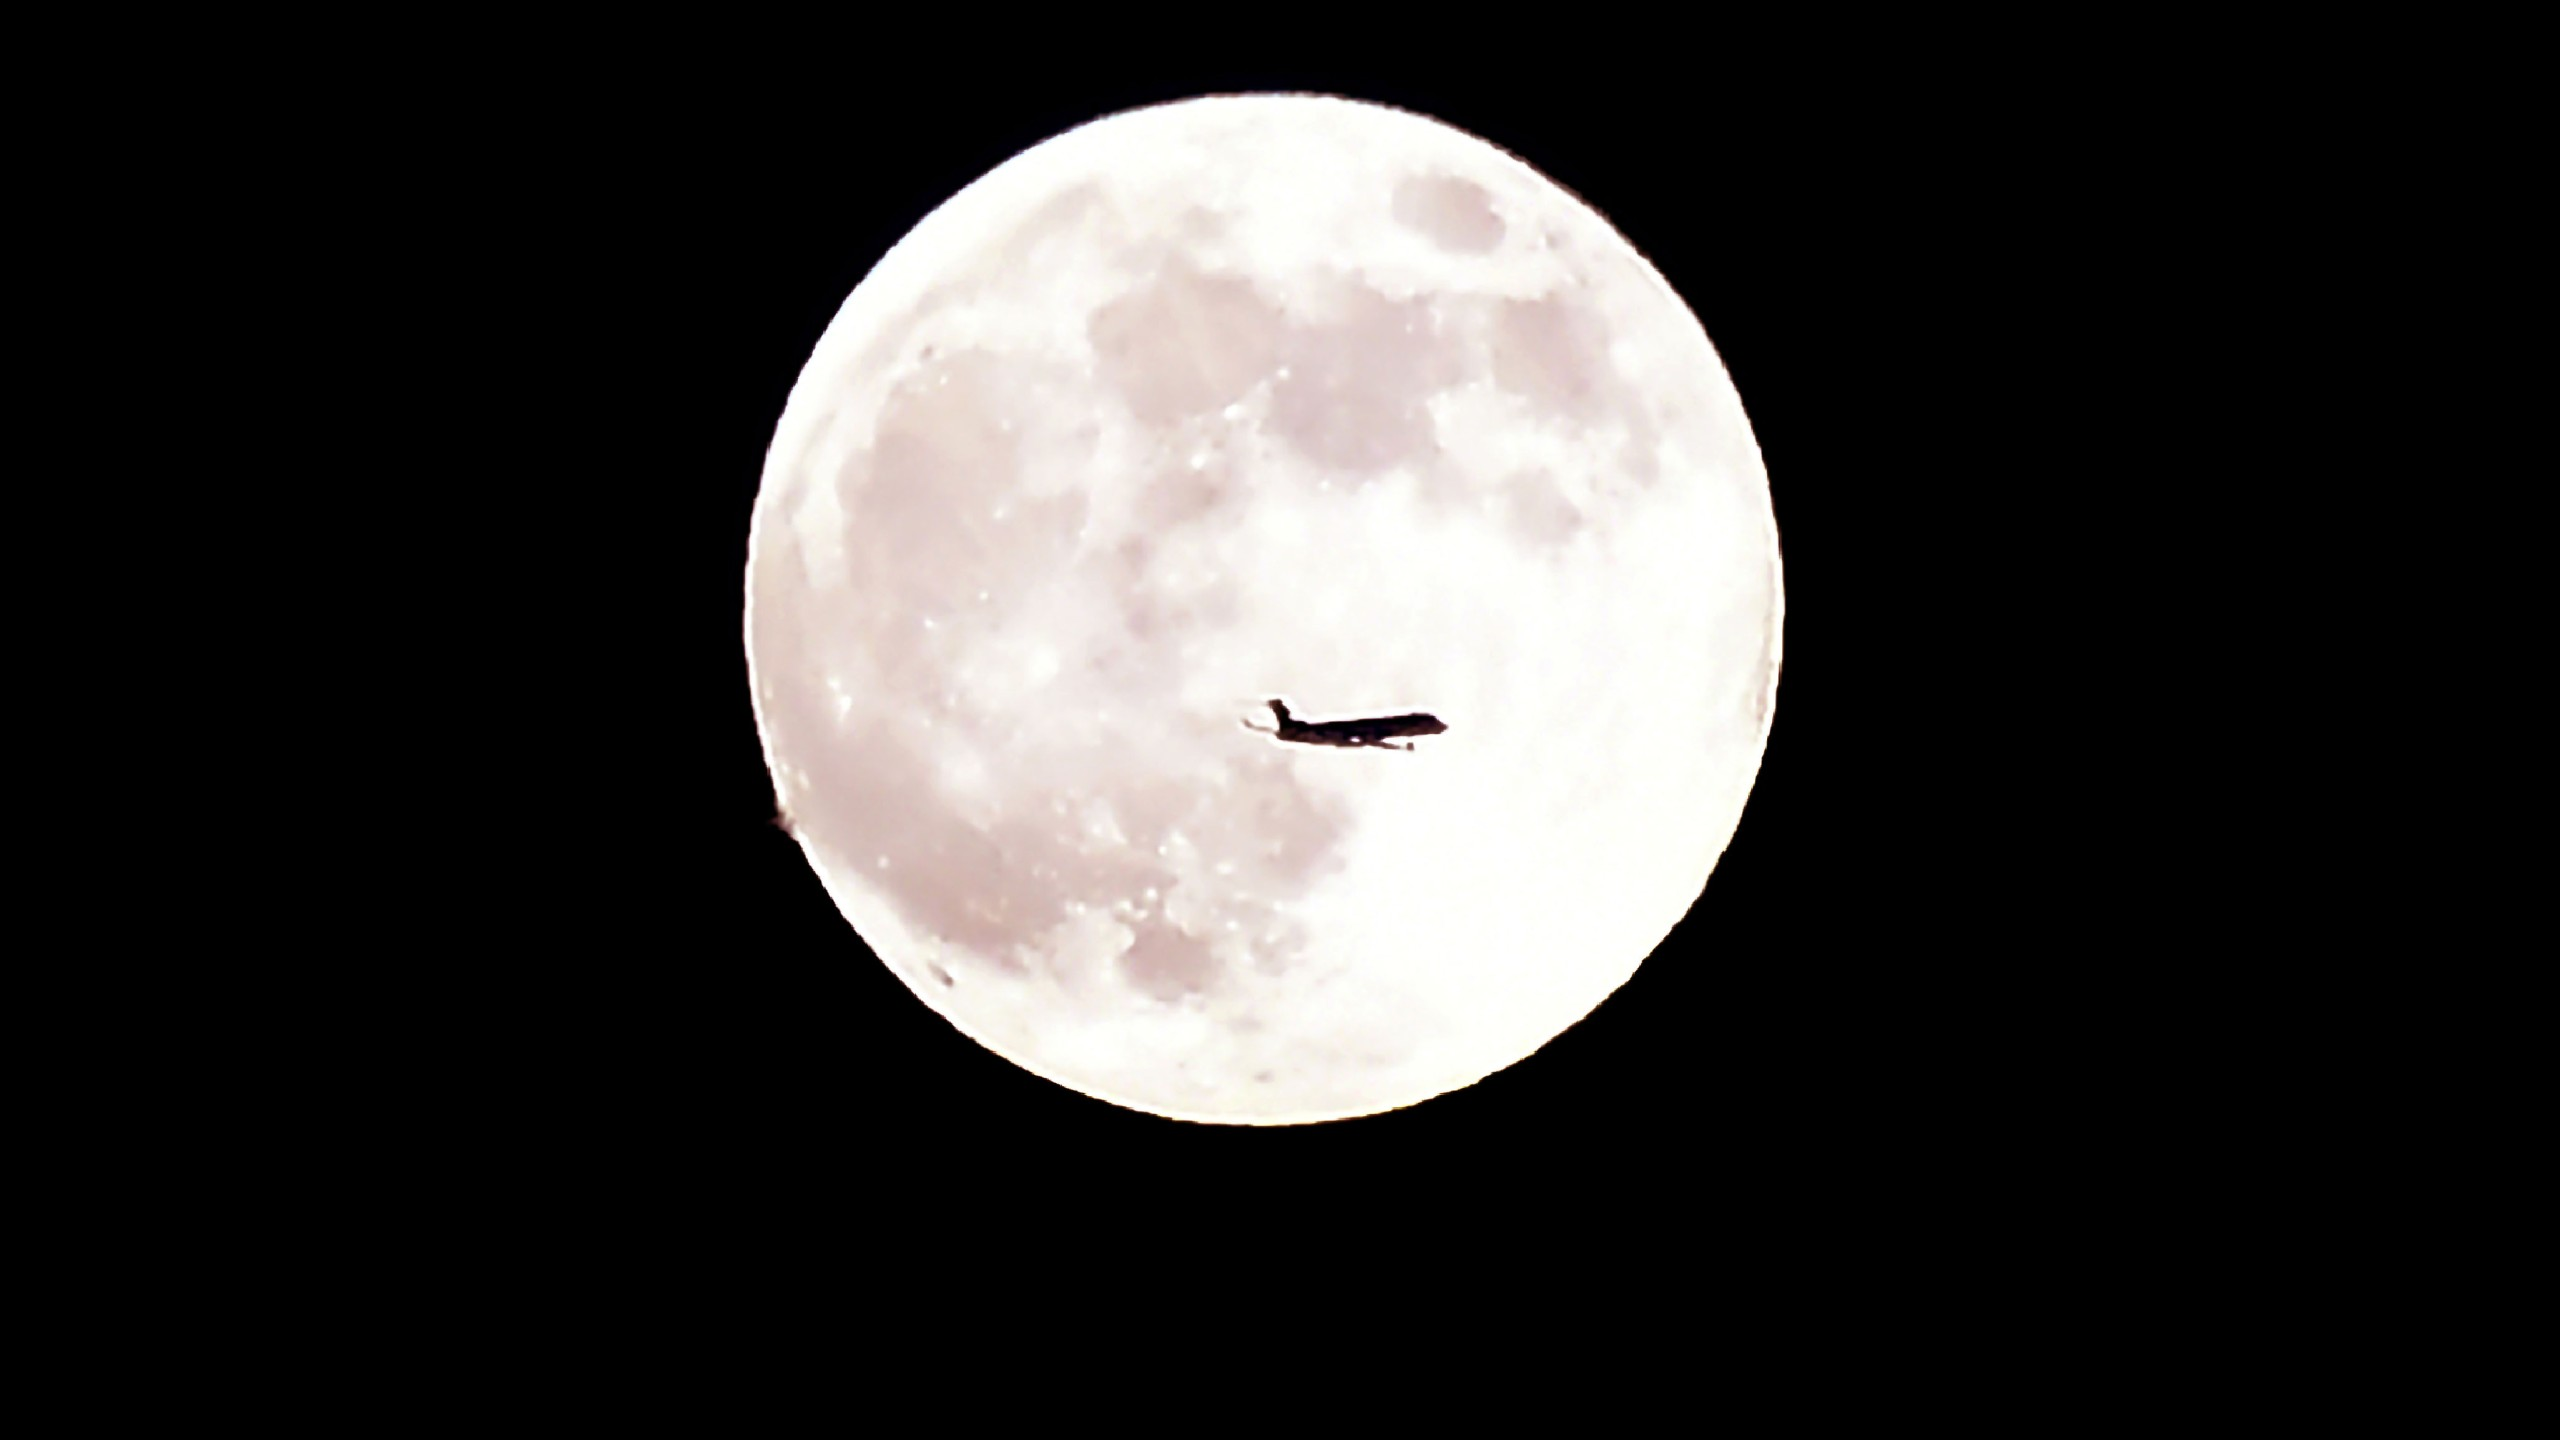 An airplane flies past June's full moon known as the Strawberry Moon on June 27, 2018 in Montebello, California. (Credit: FREDERIC J. BROWN/AFP/Getty Images)